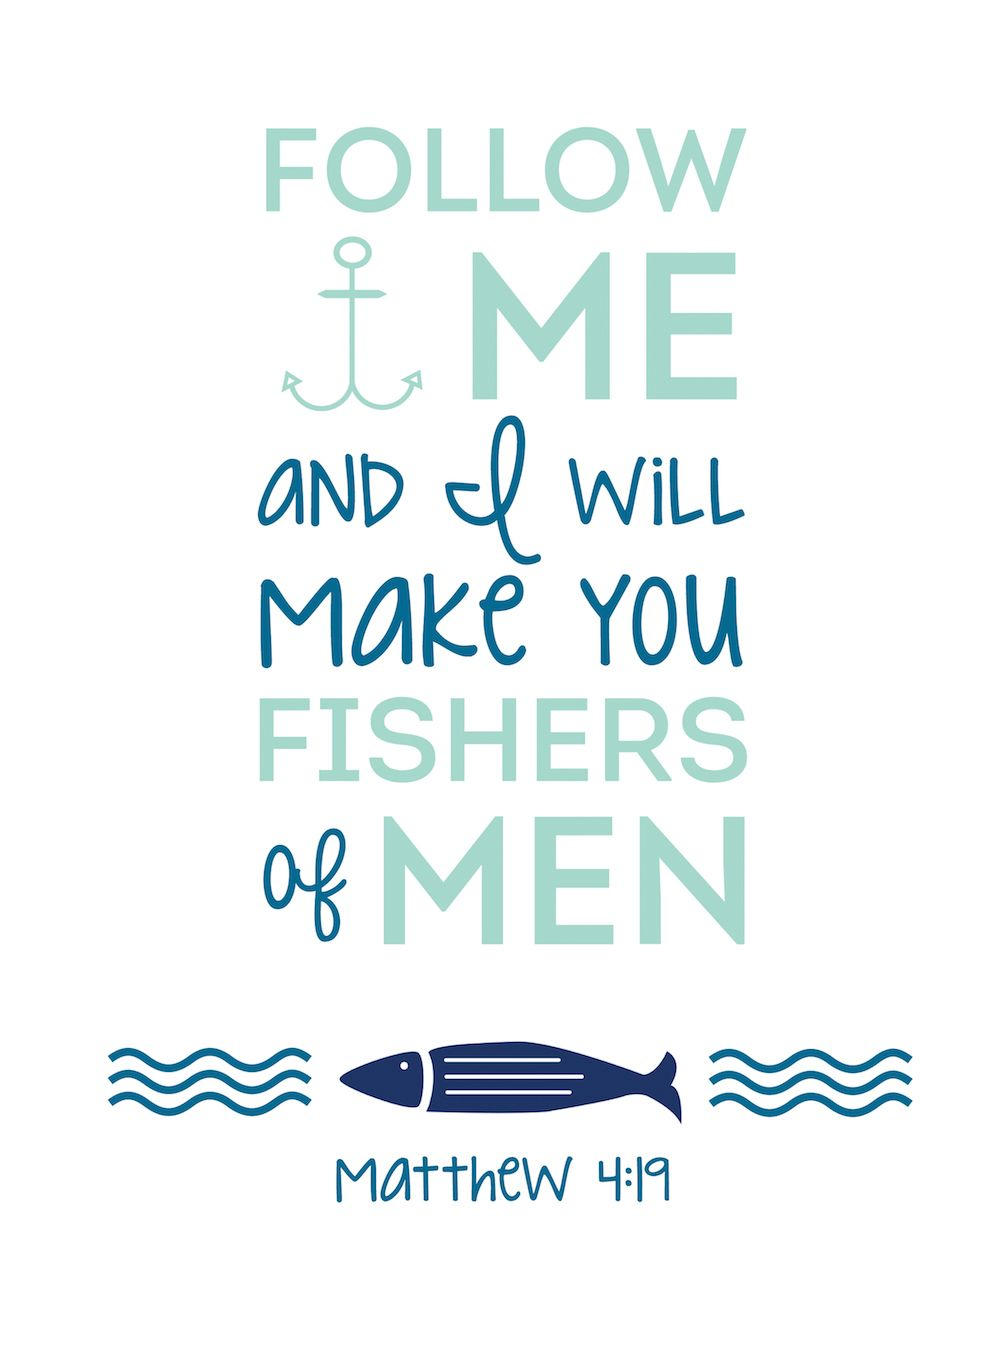 FREE Matthew 4:19 Printable - Follow Me and I will make you fishers of men.  This blog offers a free Bible verse printable every month!  www.sincerelysarad. ...